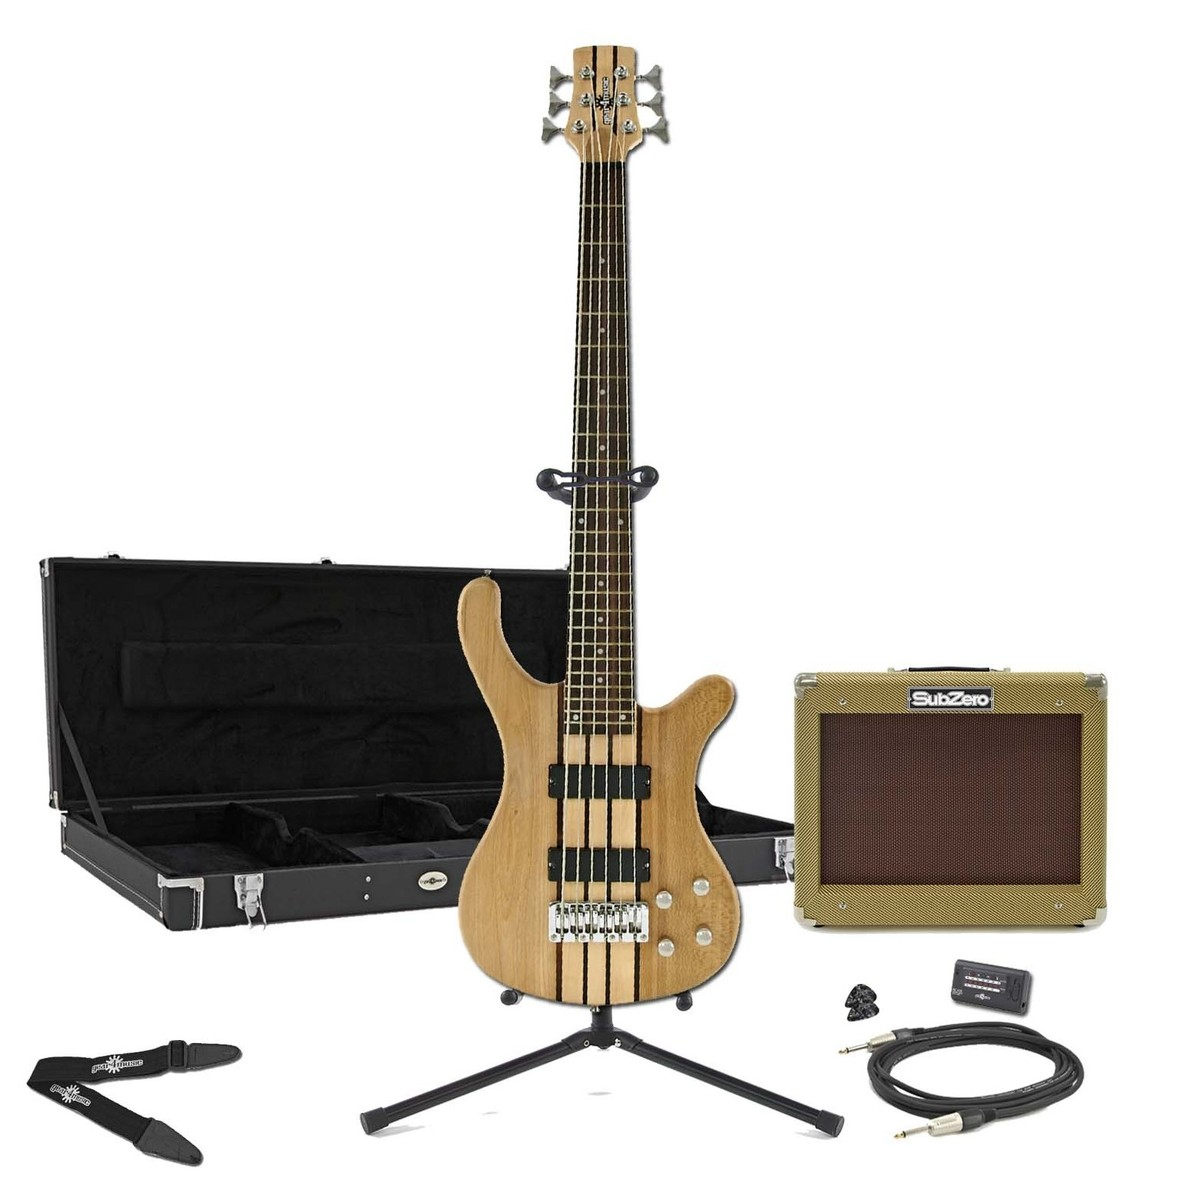 oregon 6 string bass subzero v35b amp pack natural at gear4music. Black Bedroom Furniture Sets. Home Design Ideas